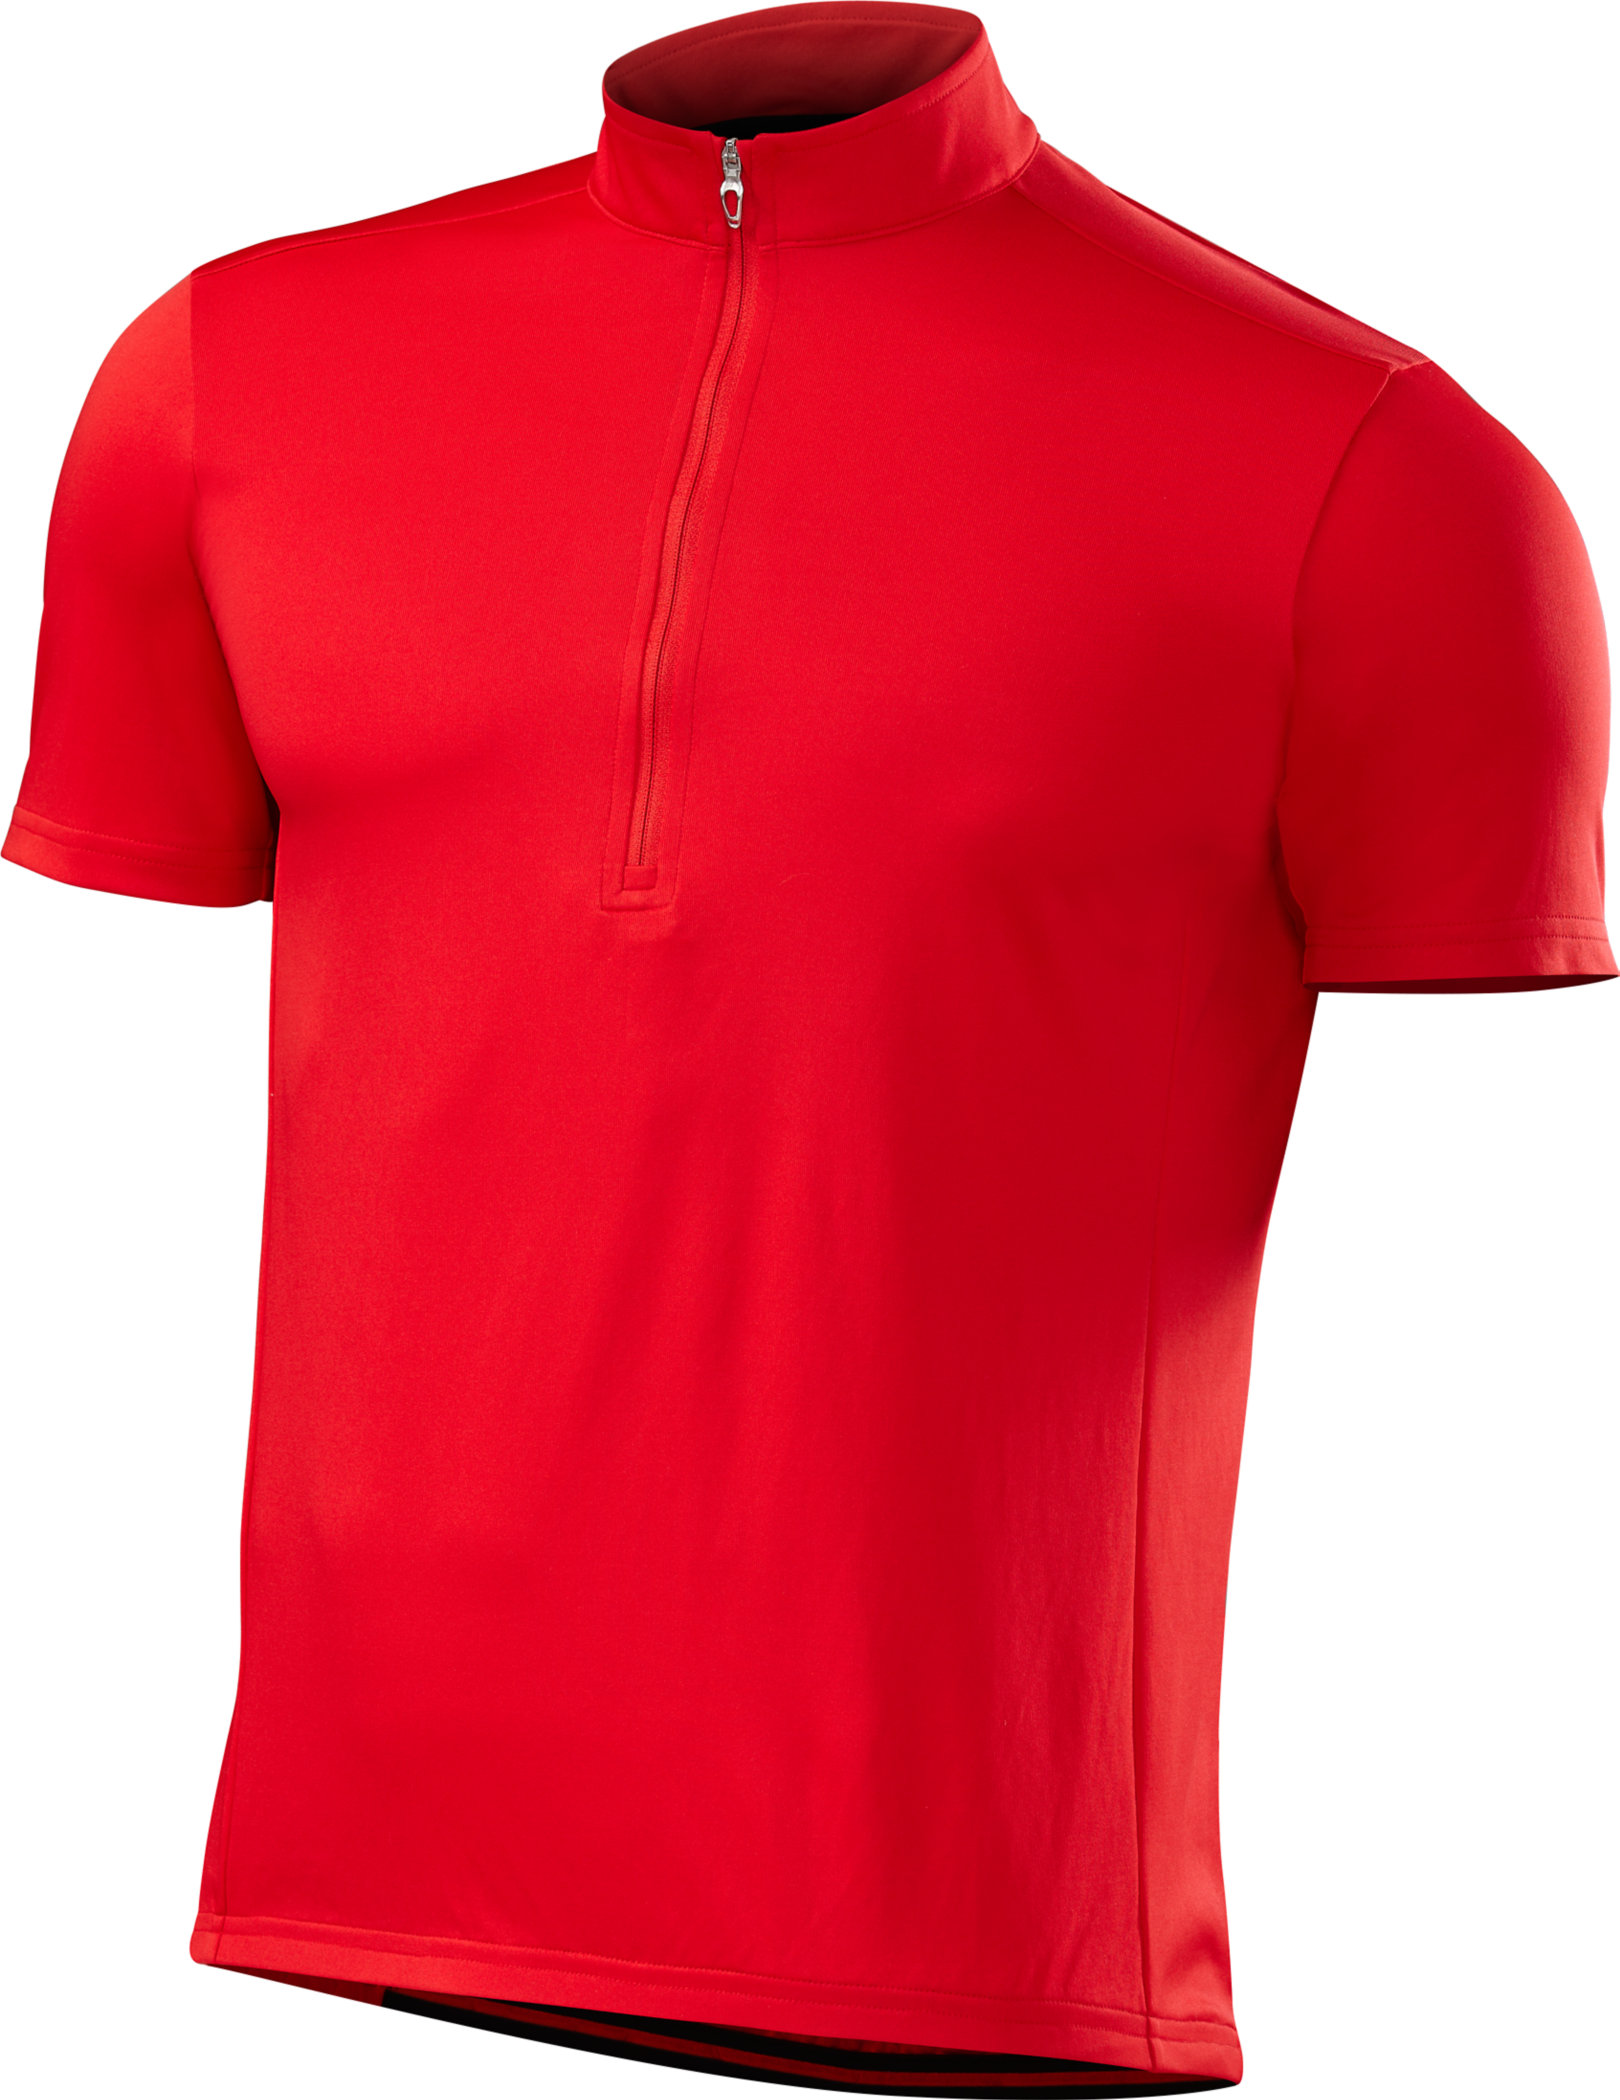 Specialized RBX Jersey Red Medium - Alpha Bikes